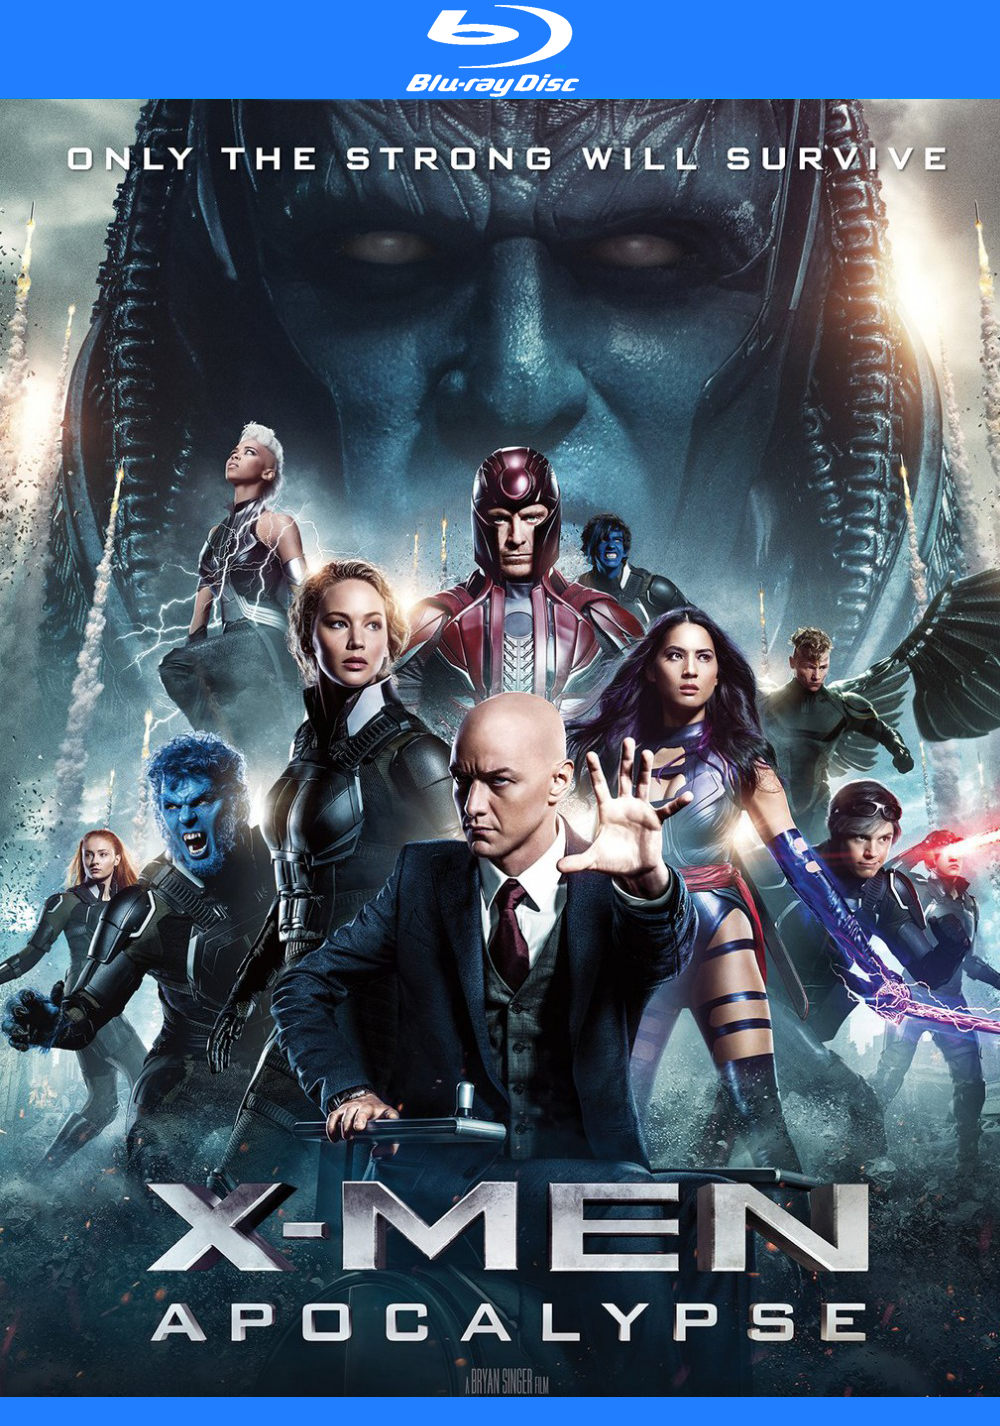 Download X-Men: Apocalipse (2016) - Dublado MP4 720p BDRip MEGA